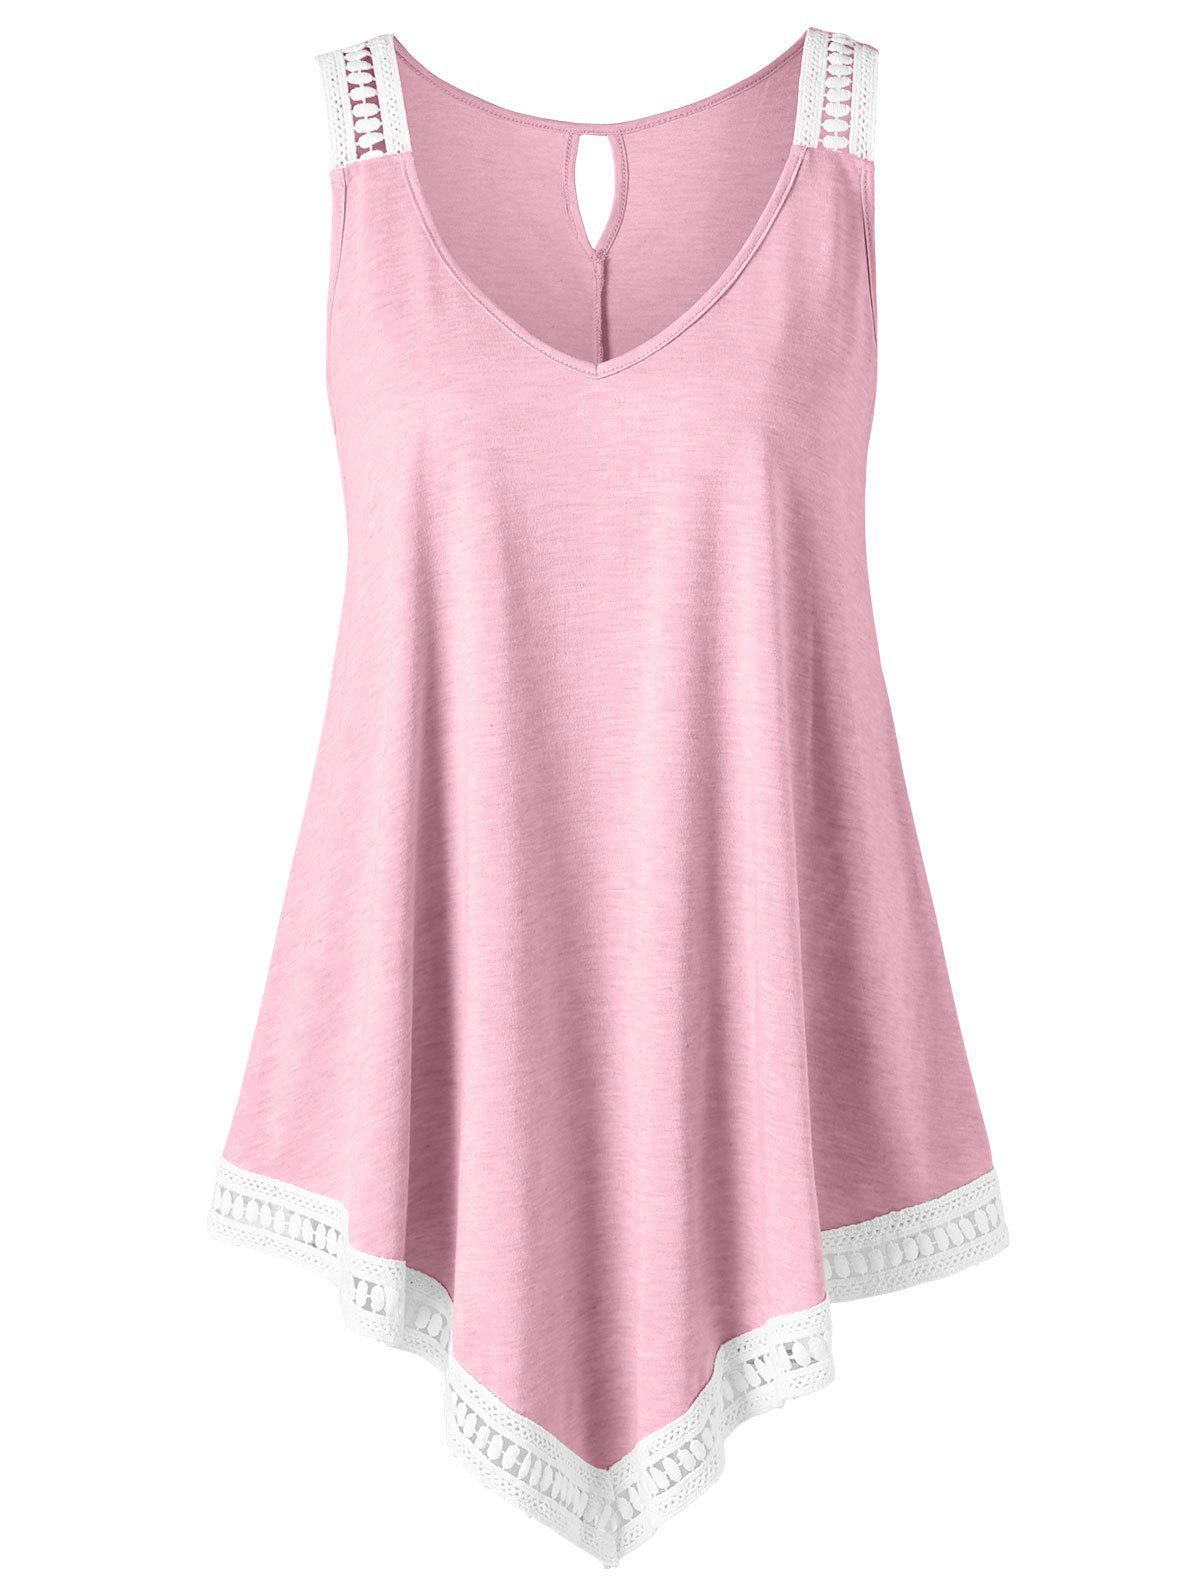 Plus Size V-neck Swing Tank Top - LIGHT PINK 5XL